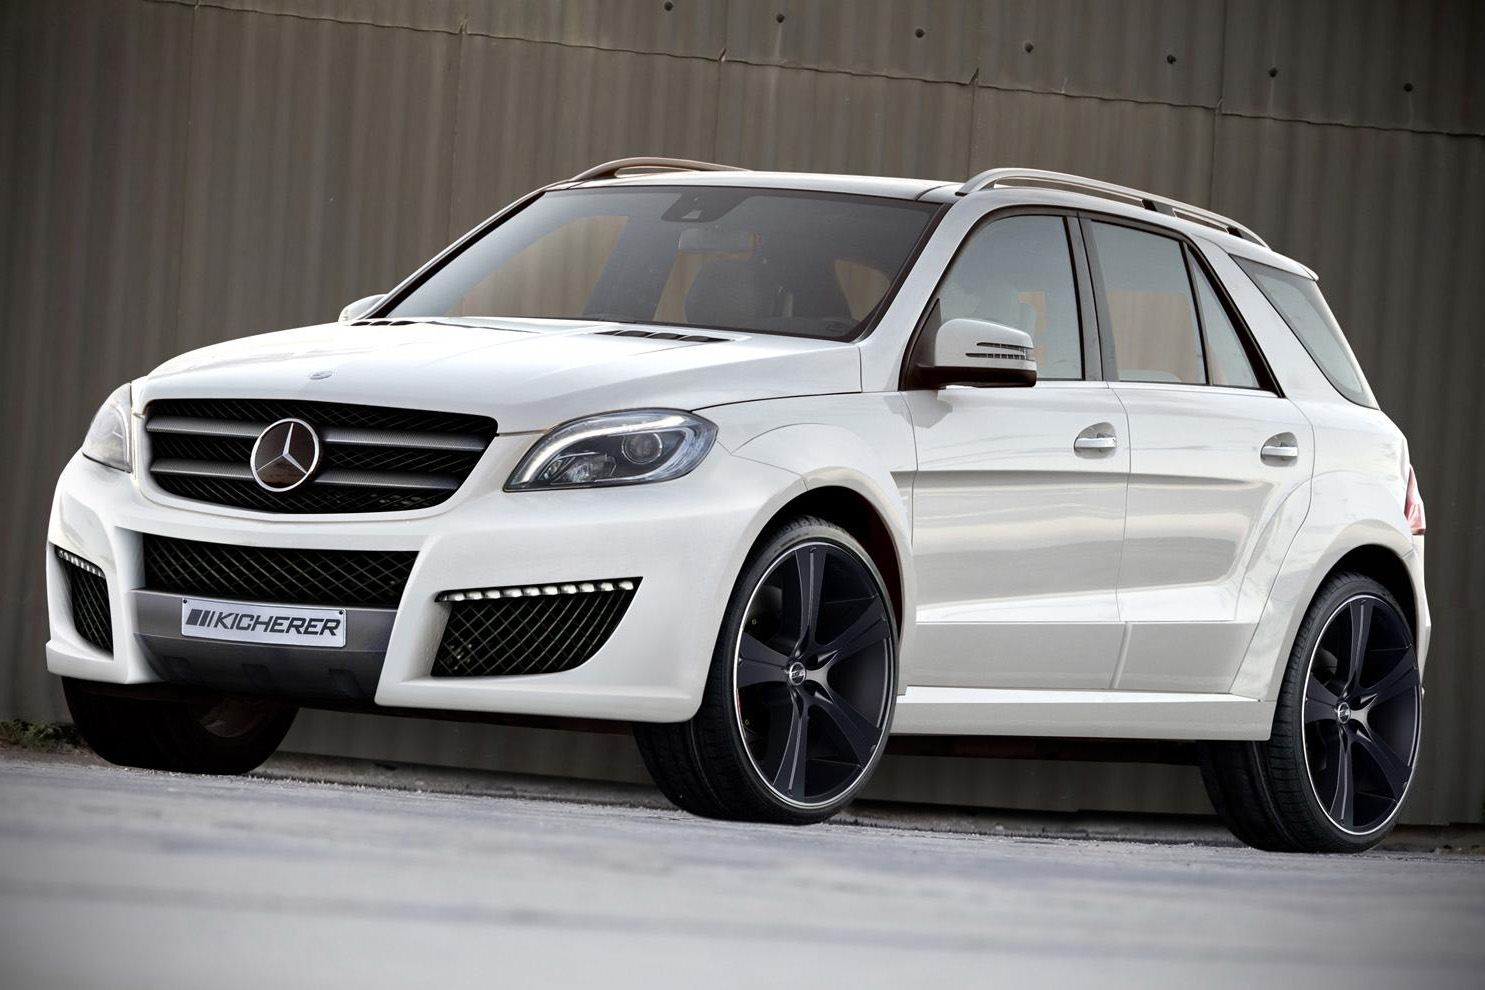 kicherer gives 2012 mercedes benz m class a new look autoevolution. Black Bedroom Furniture Sets. Home Design Ideas